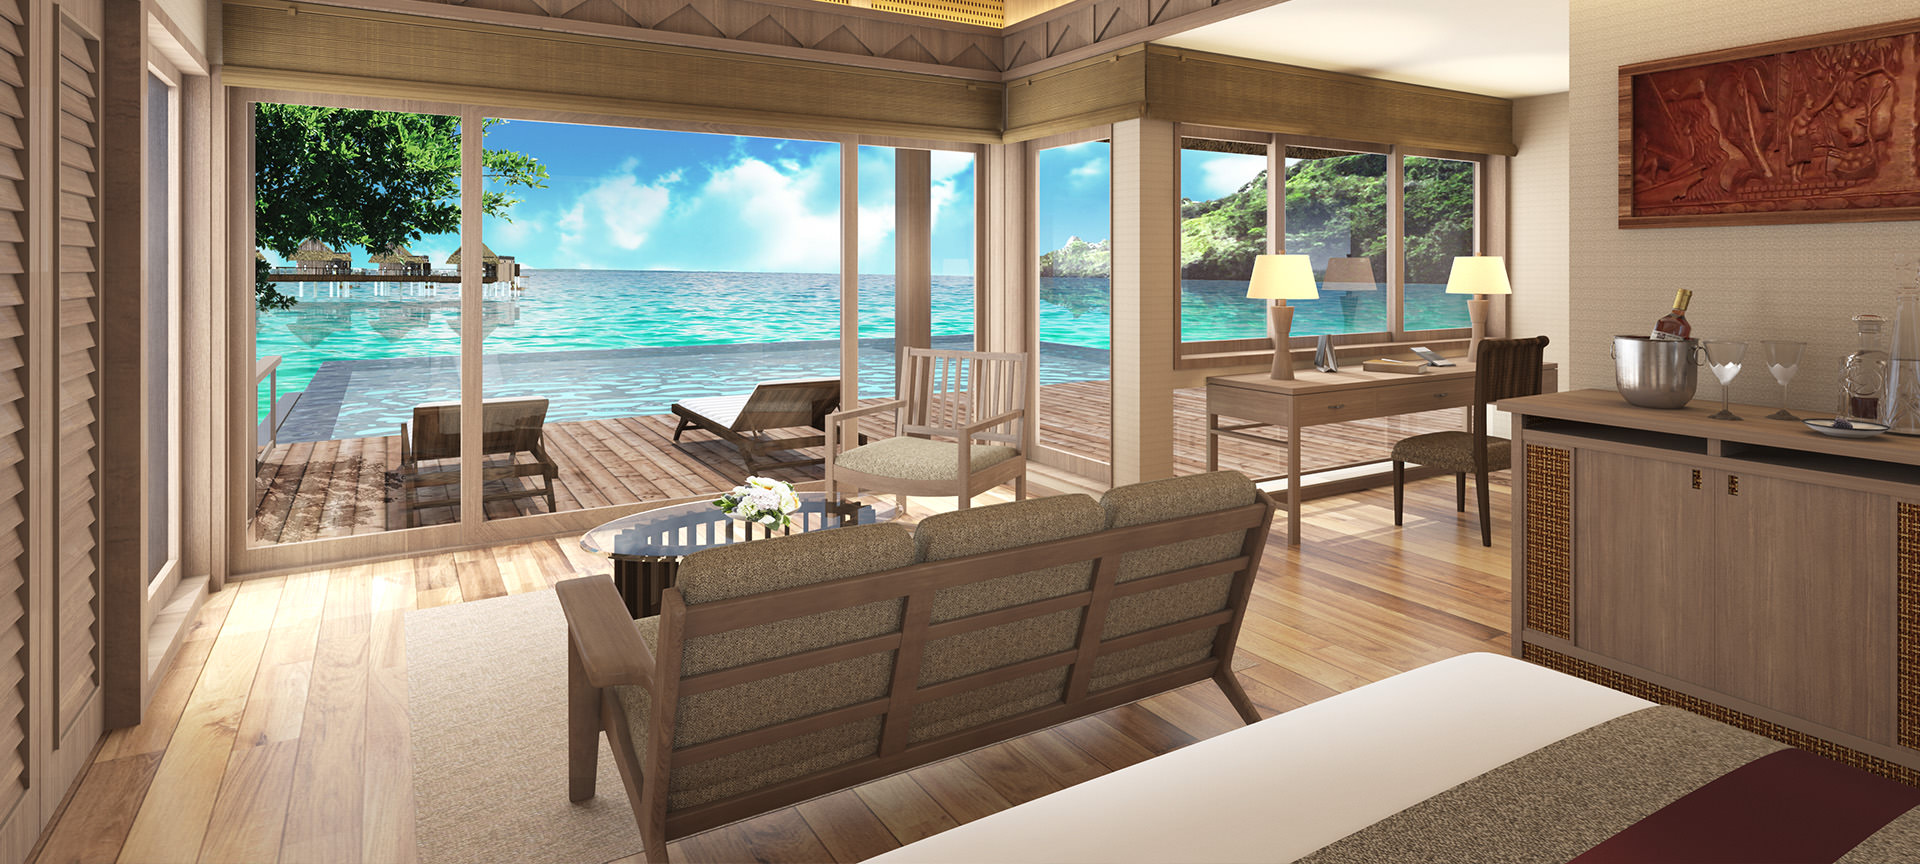 PPR Accommodations - Palau Pacific Resort